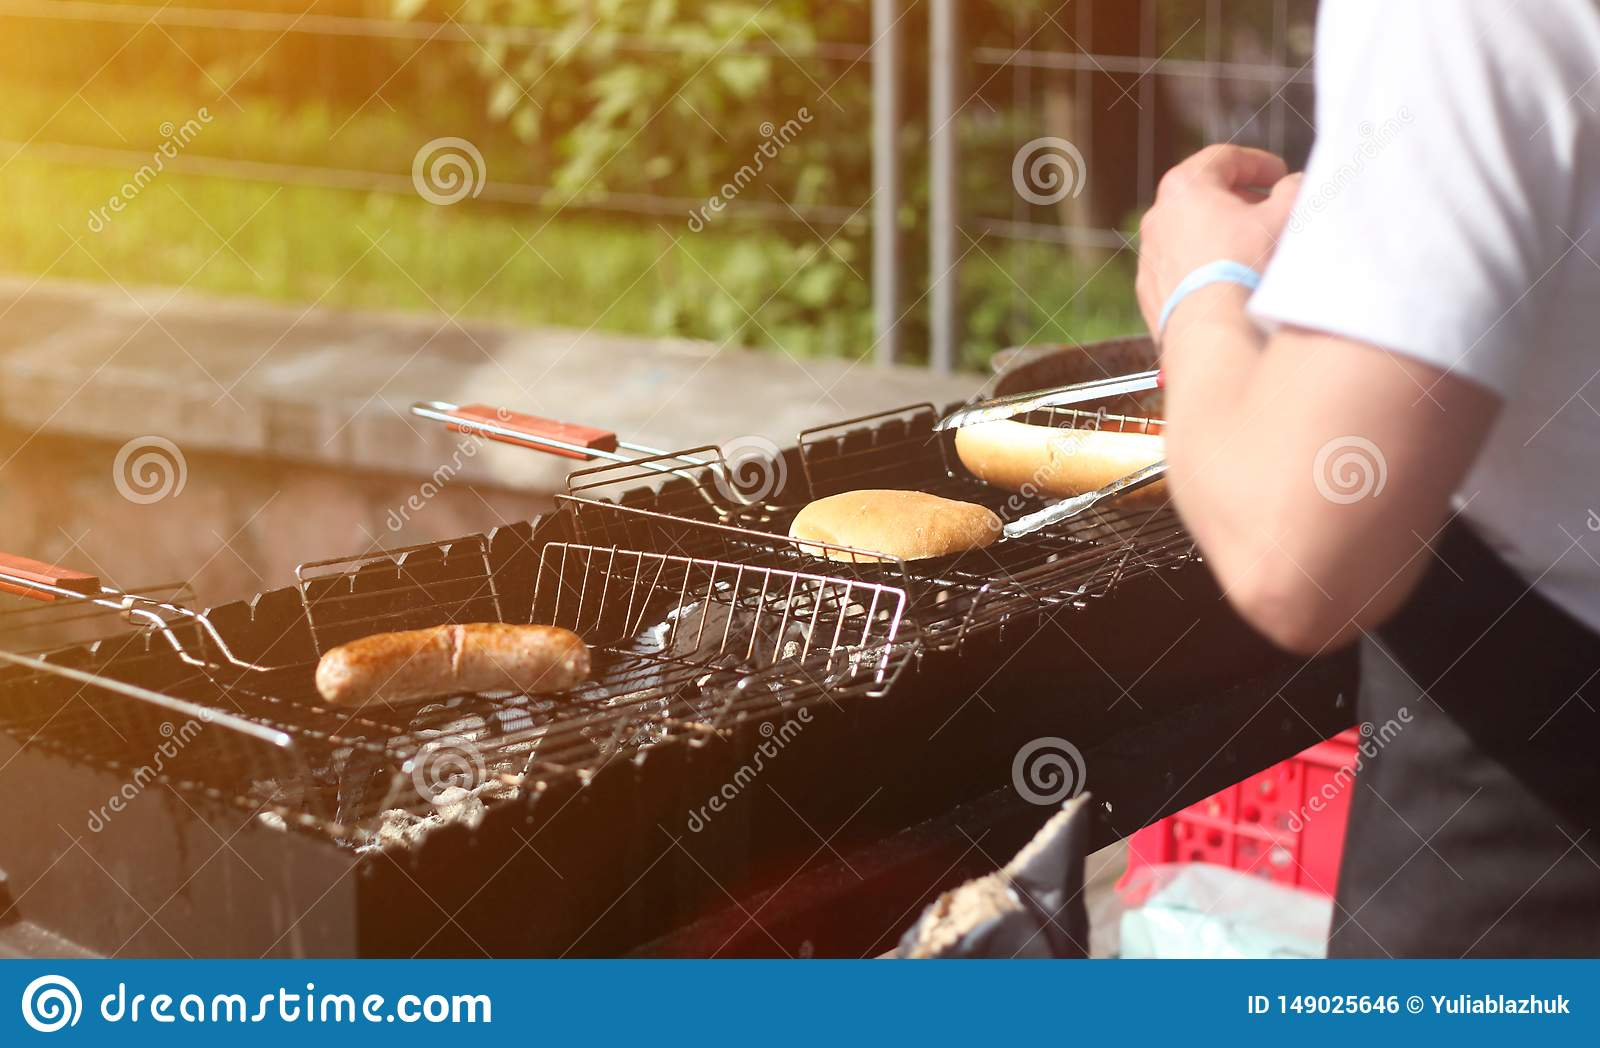 Man cooks sausages and buns for hot dogs and burgers on the grill outdoors